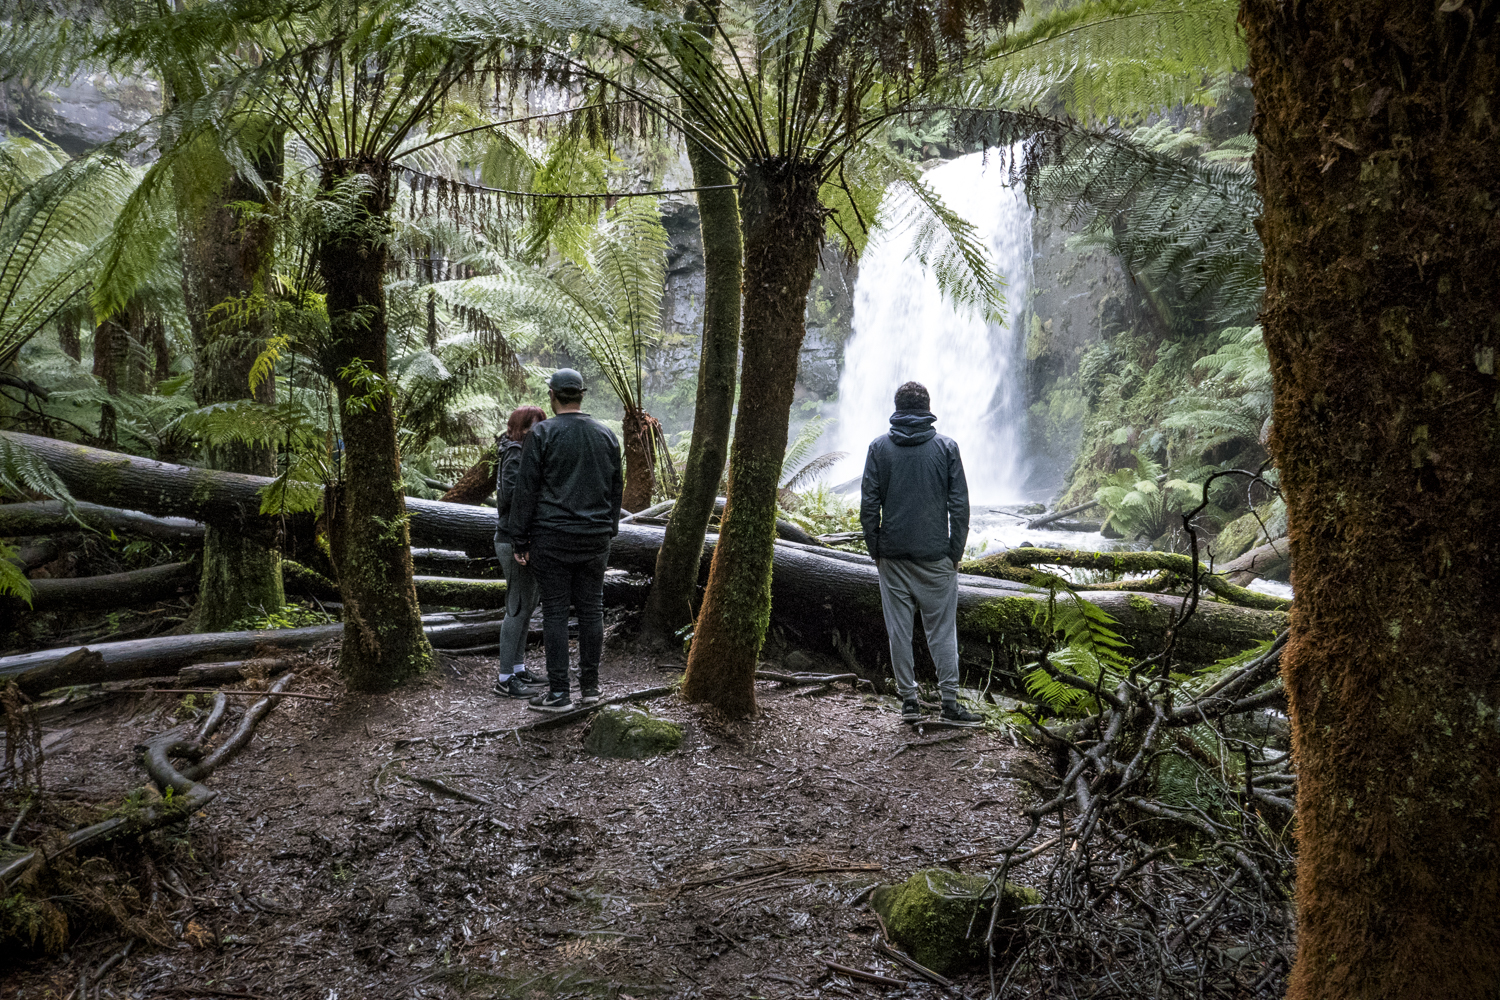 Visitors carve out paths and sections of the landscape. The small ferns are non existent, and the moss covered logs are used for selfies.